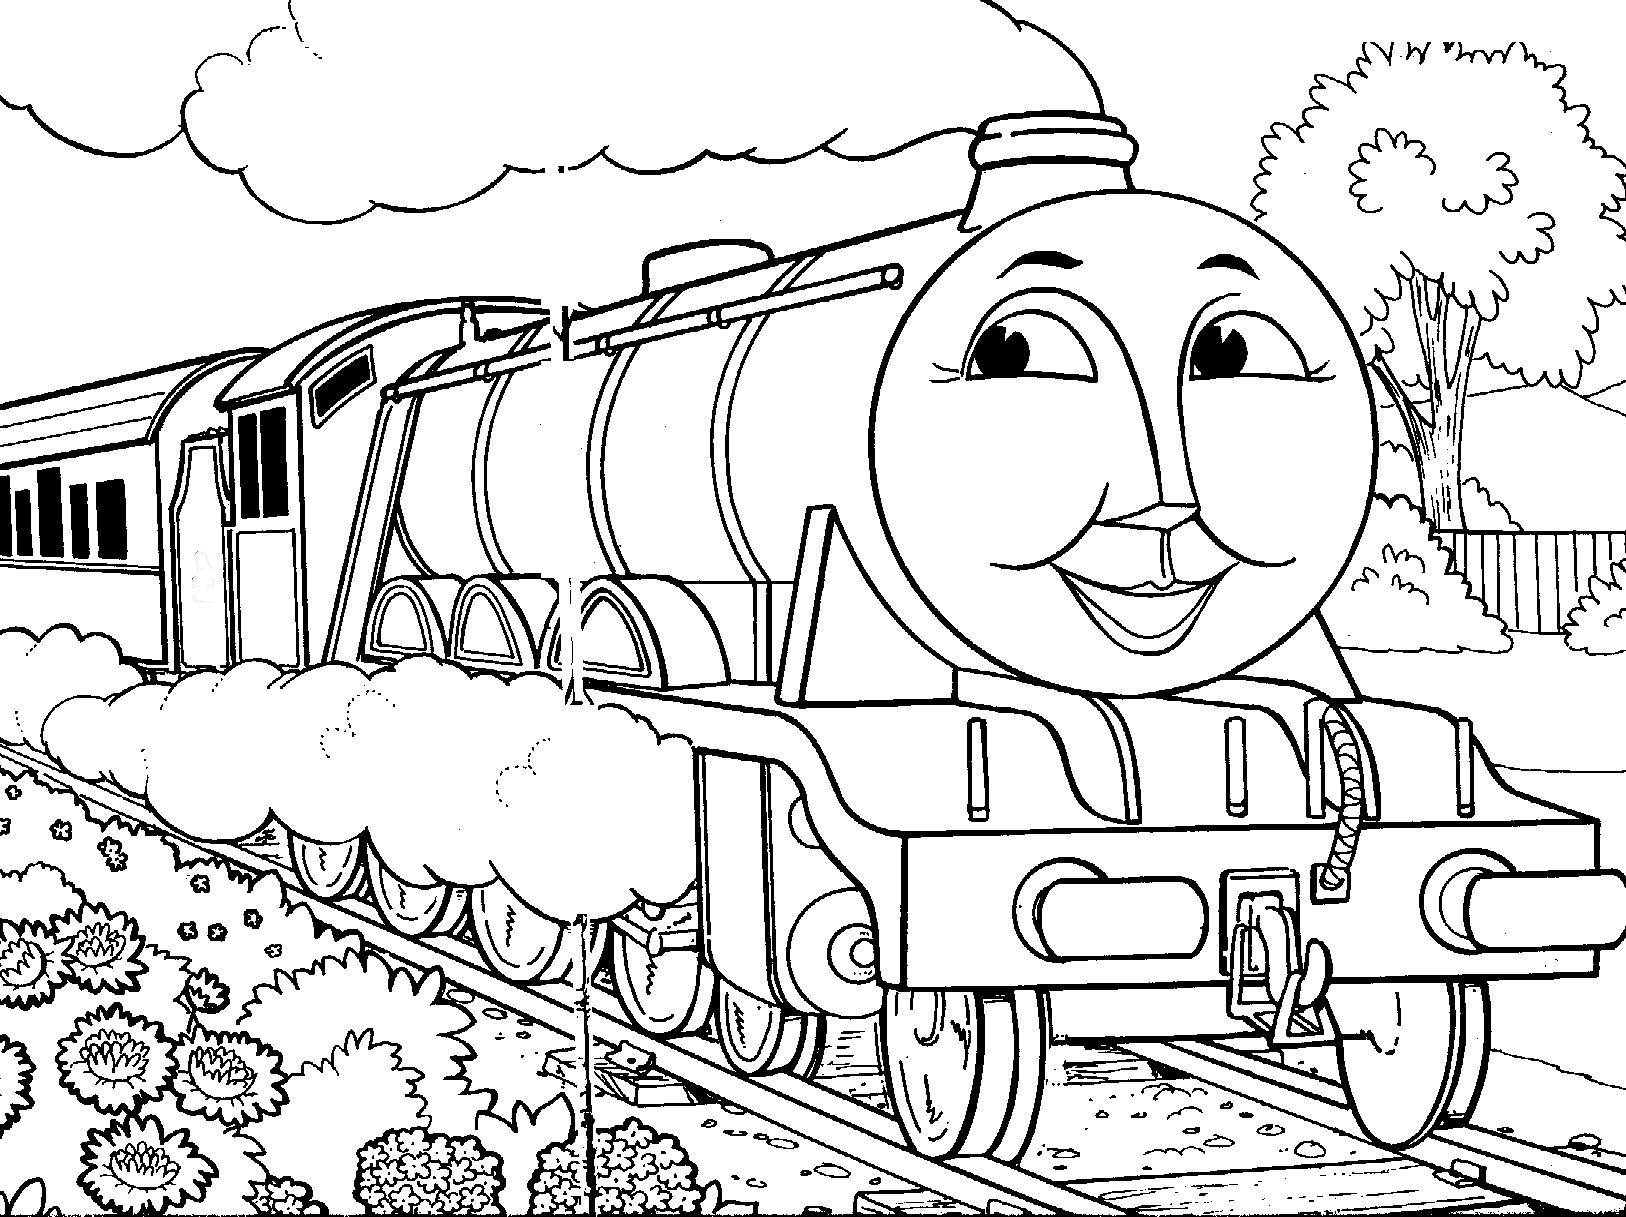 printable coloring pages trains print download thomas the train theme coloring pages trains printable coloring pages